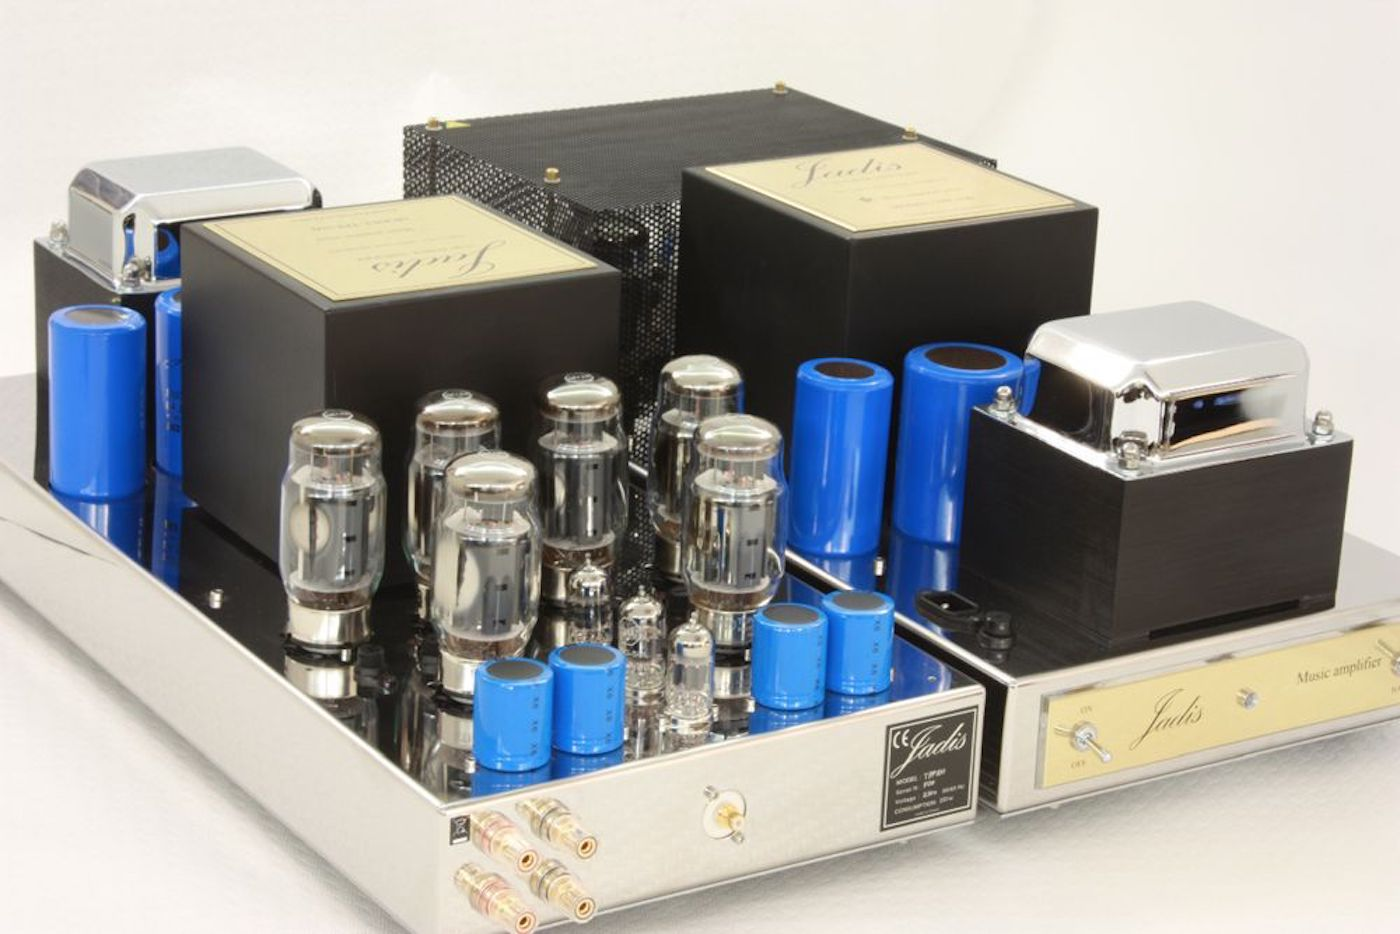 Jadis JA-120 Mono Power Amplifier